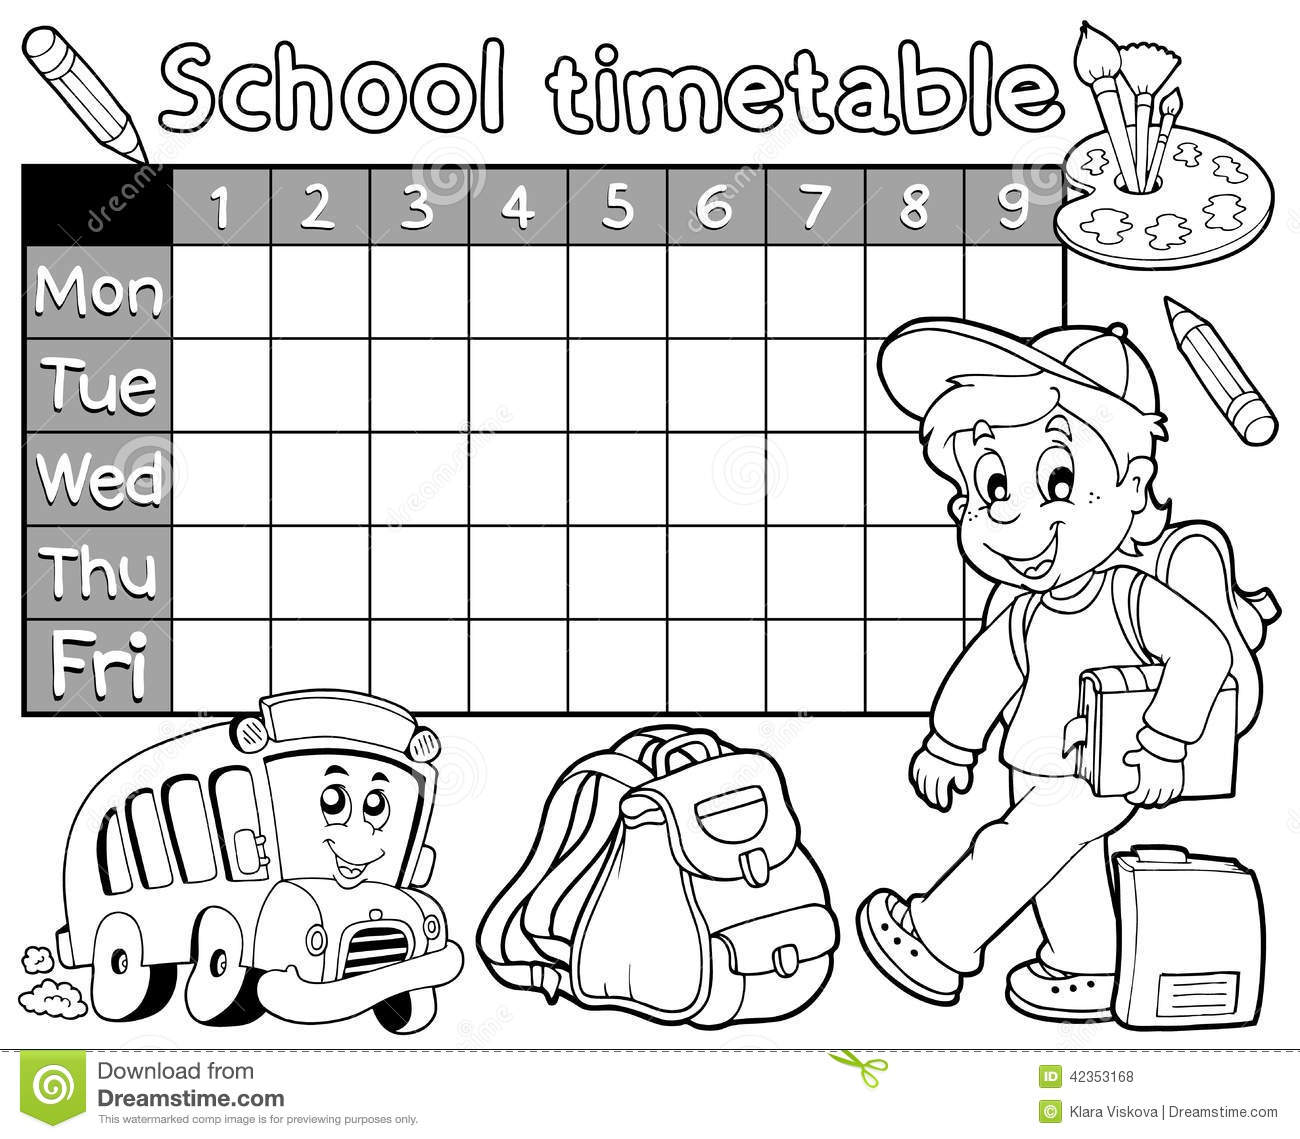 Coloring Book School Timetable 1 Stock Vector Image